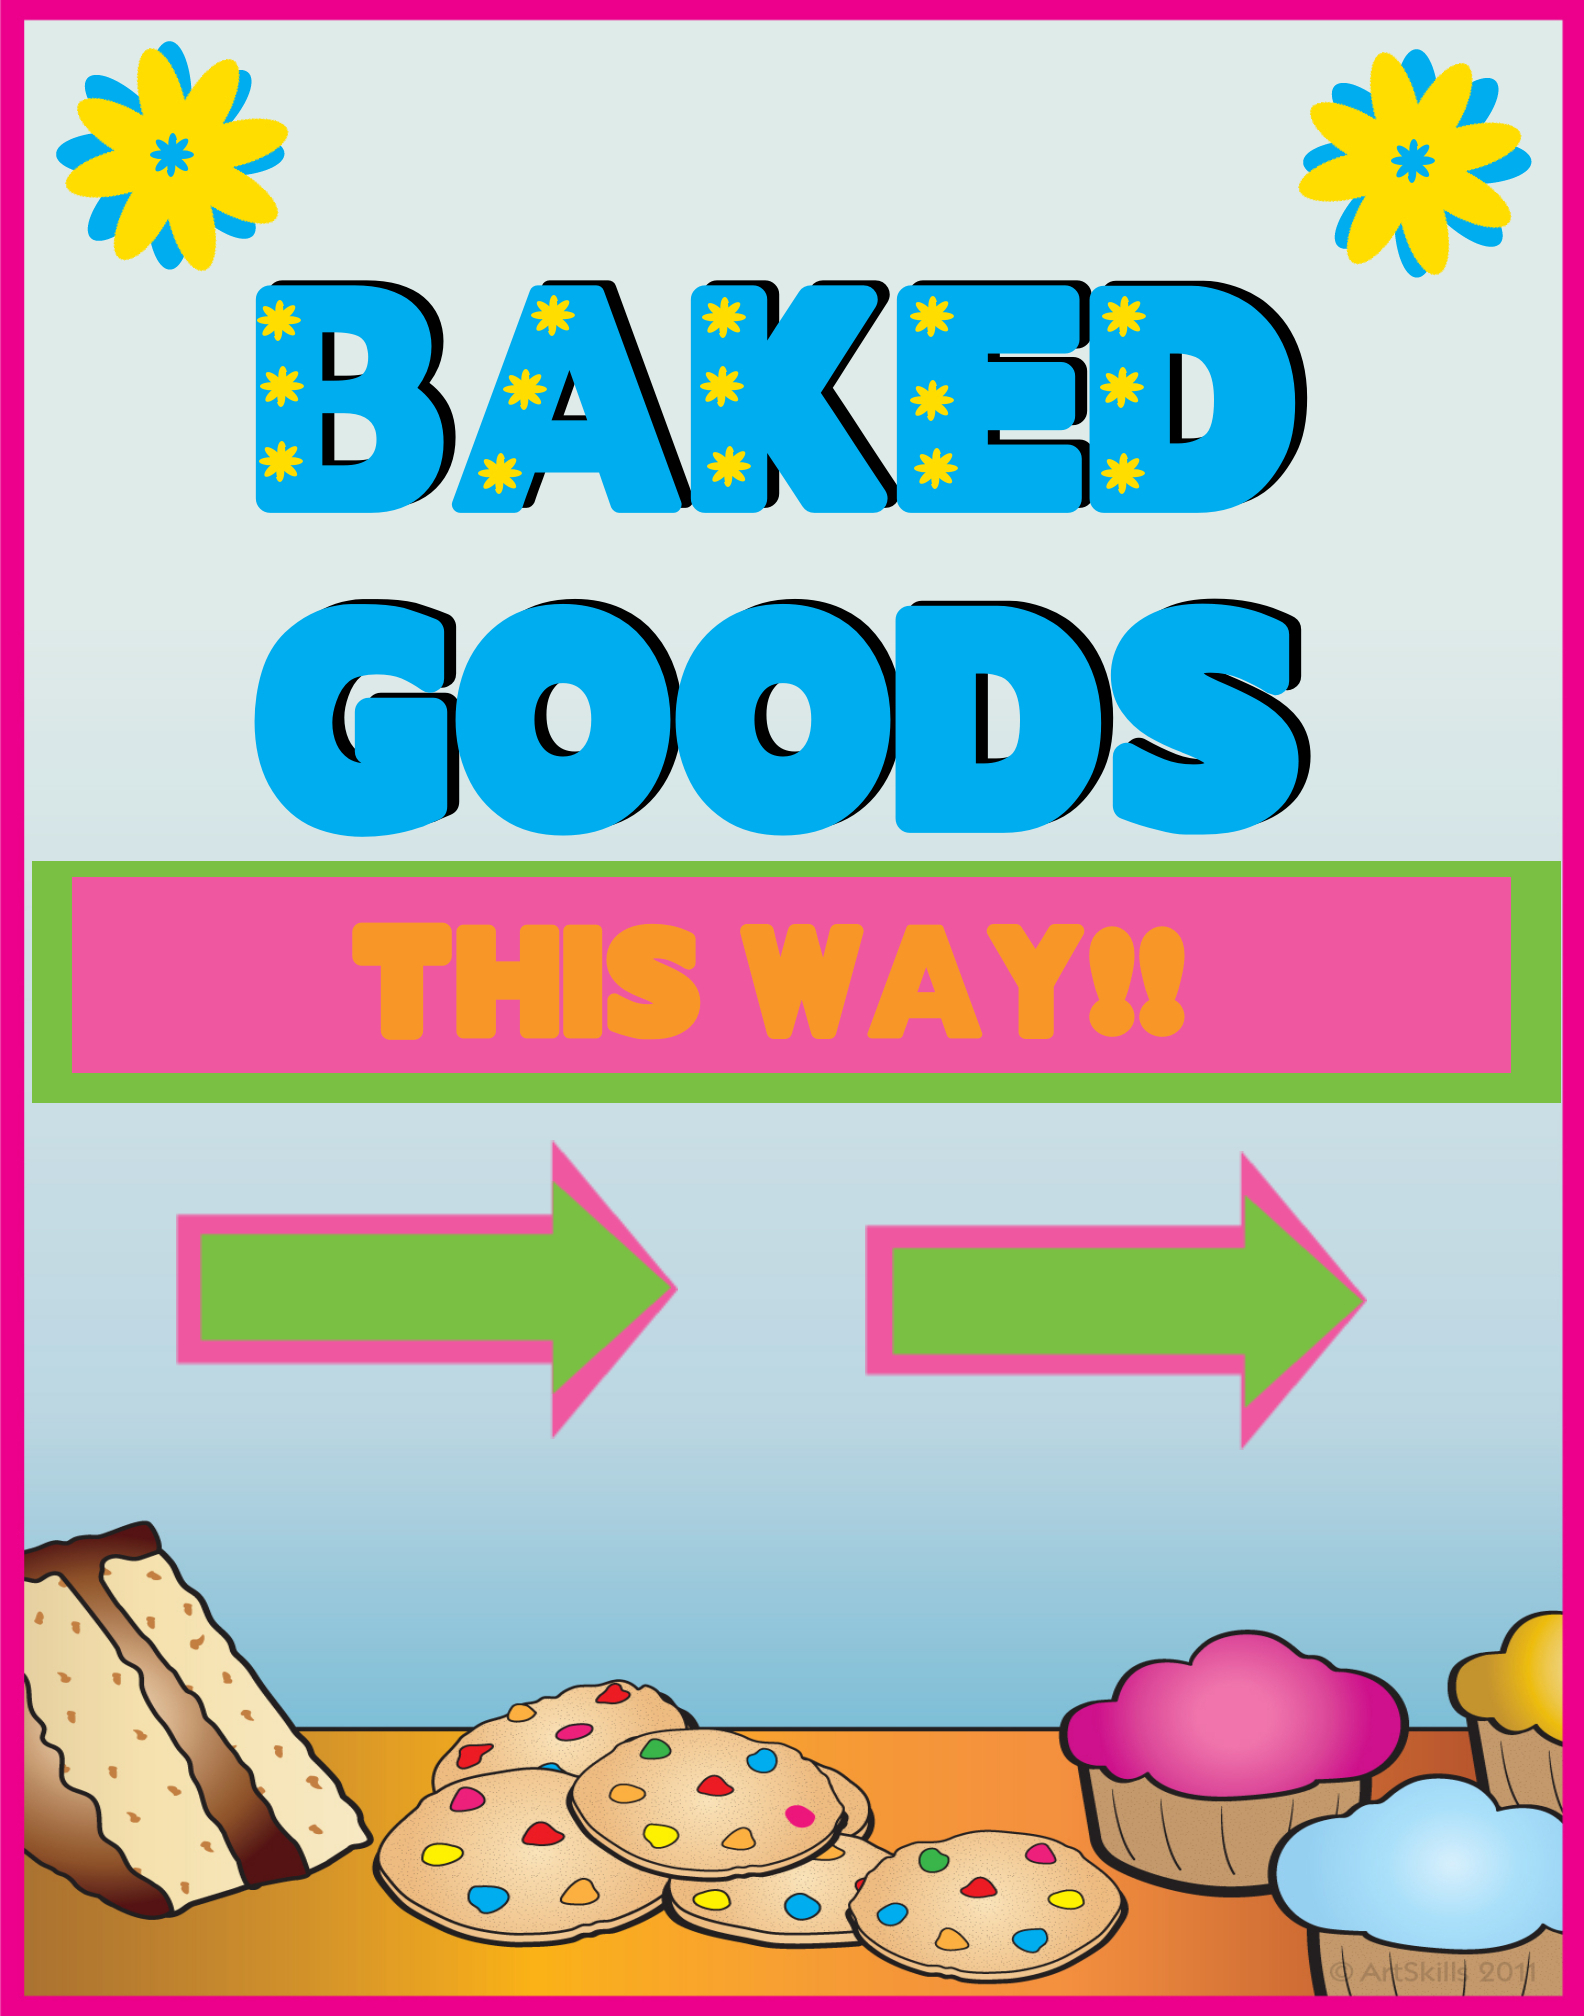 printable bake flyers co online poster gallery poster project ideas poster making pin printable bake